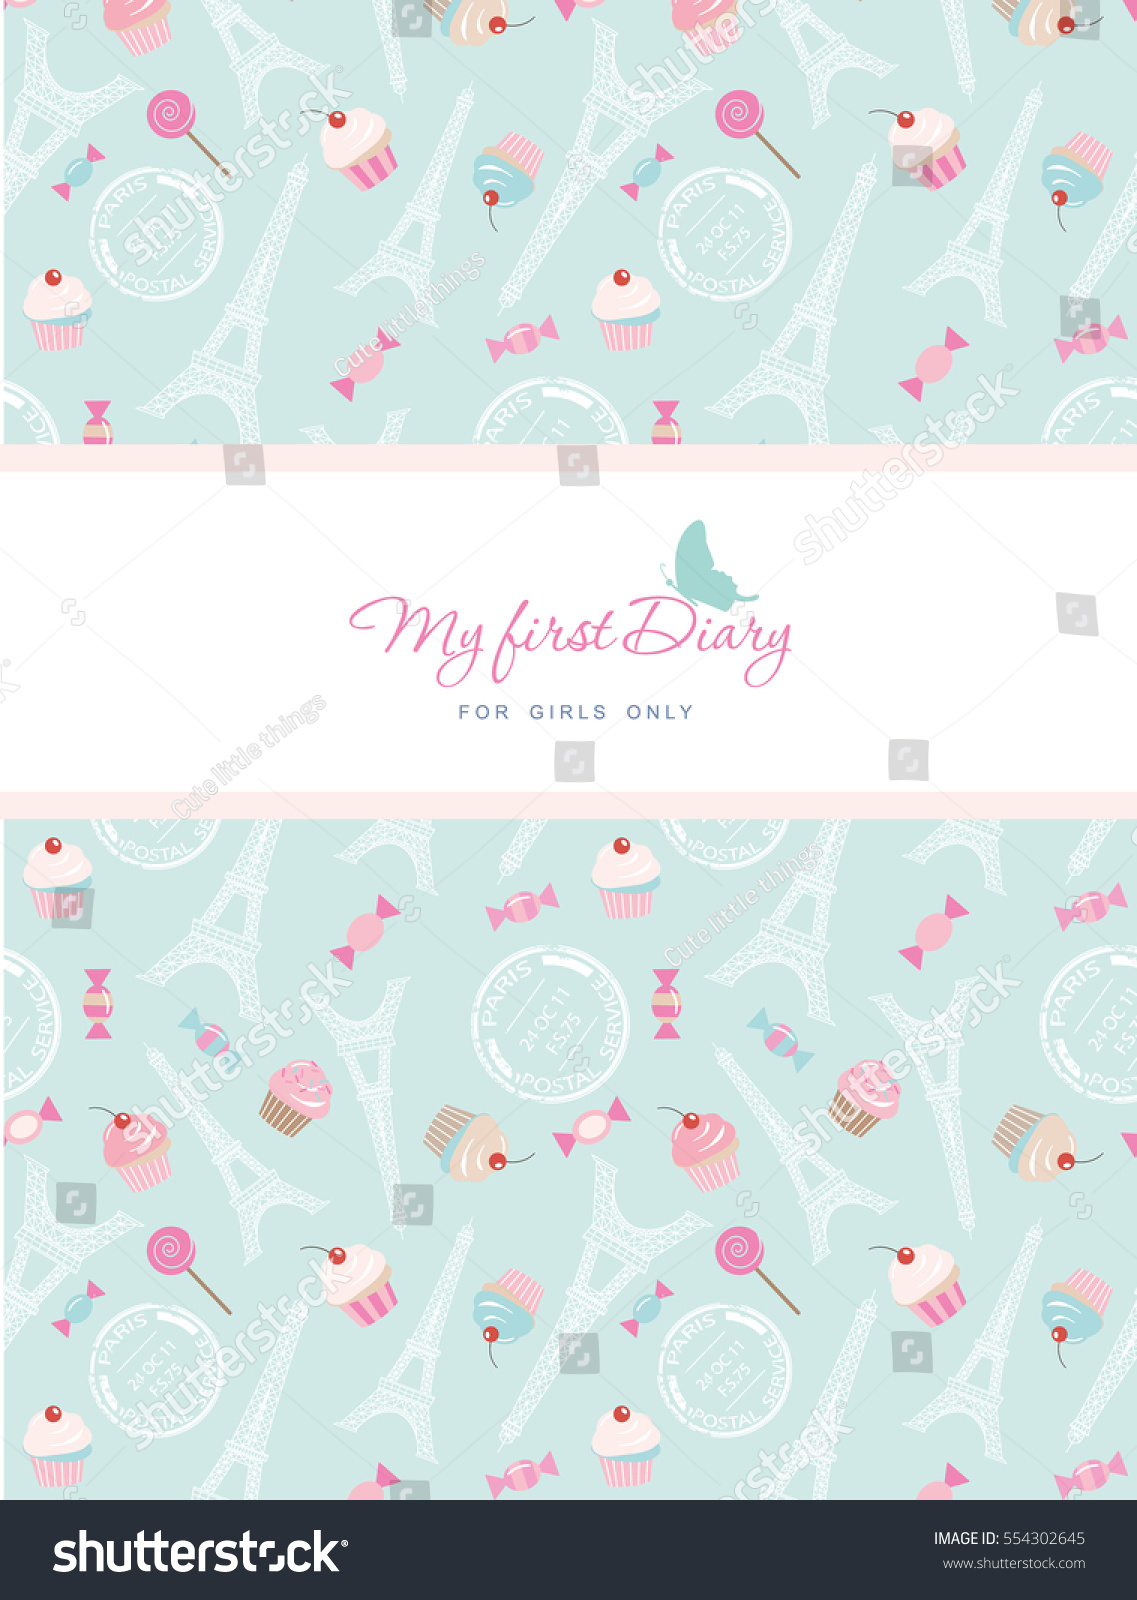 Cute Template For Notebook Cover Girls My First Diary Included Seamless Pattern With